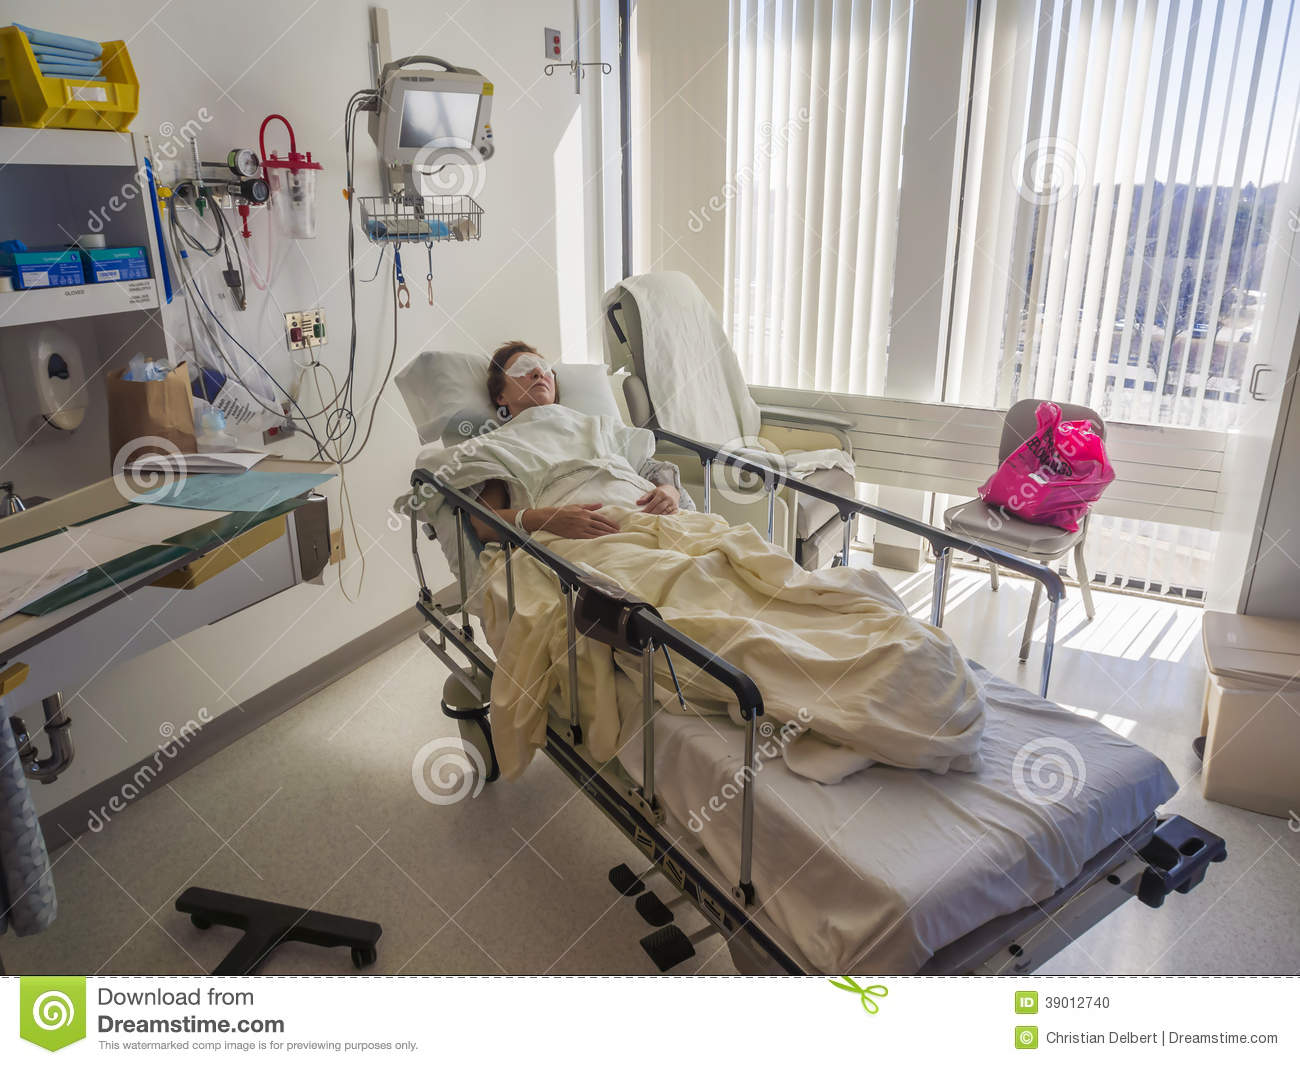 Chambre d 39 h pital et patient photo stock image 39012740 for Chambre d hopital